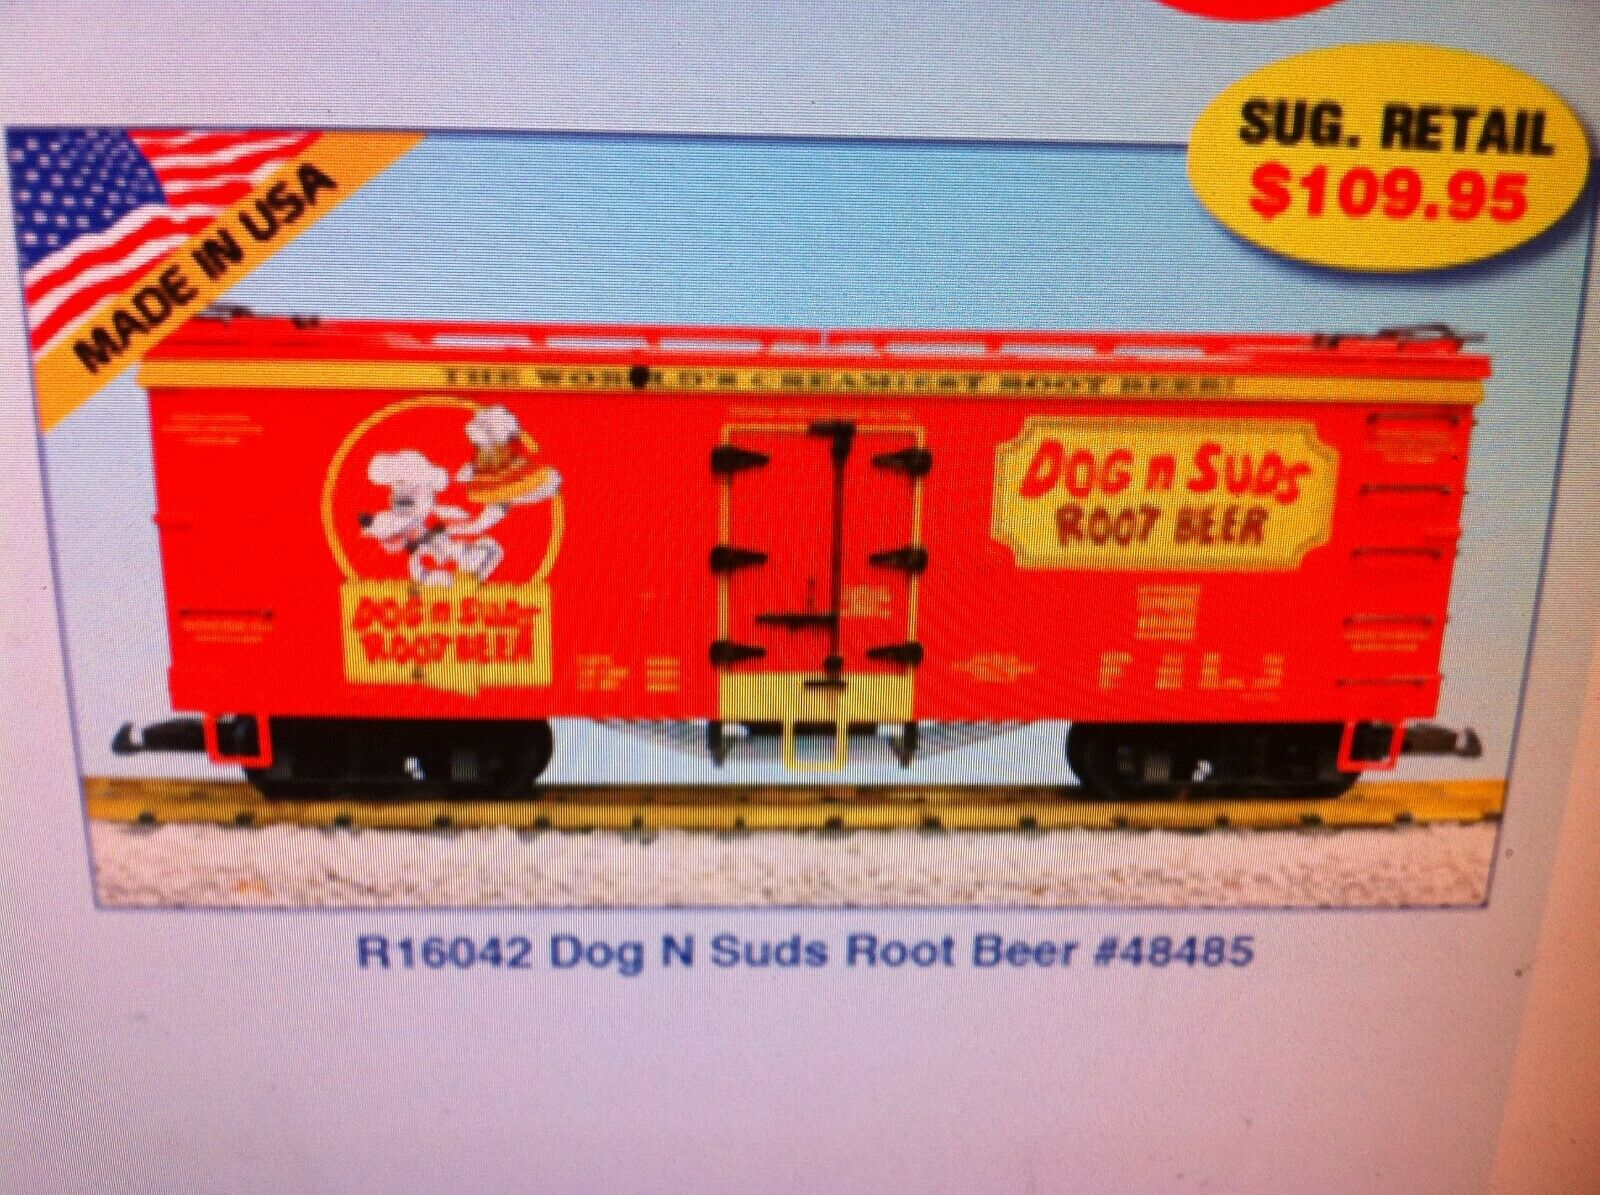 USA Trains G Scale R16042 Dog and Suds Root Beer Rd NEW RELEASE